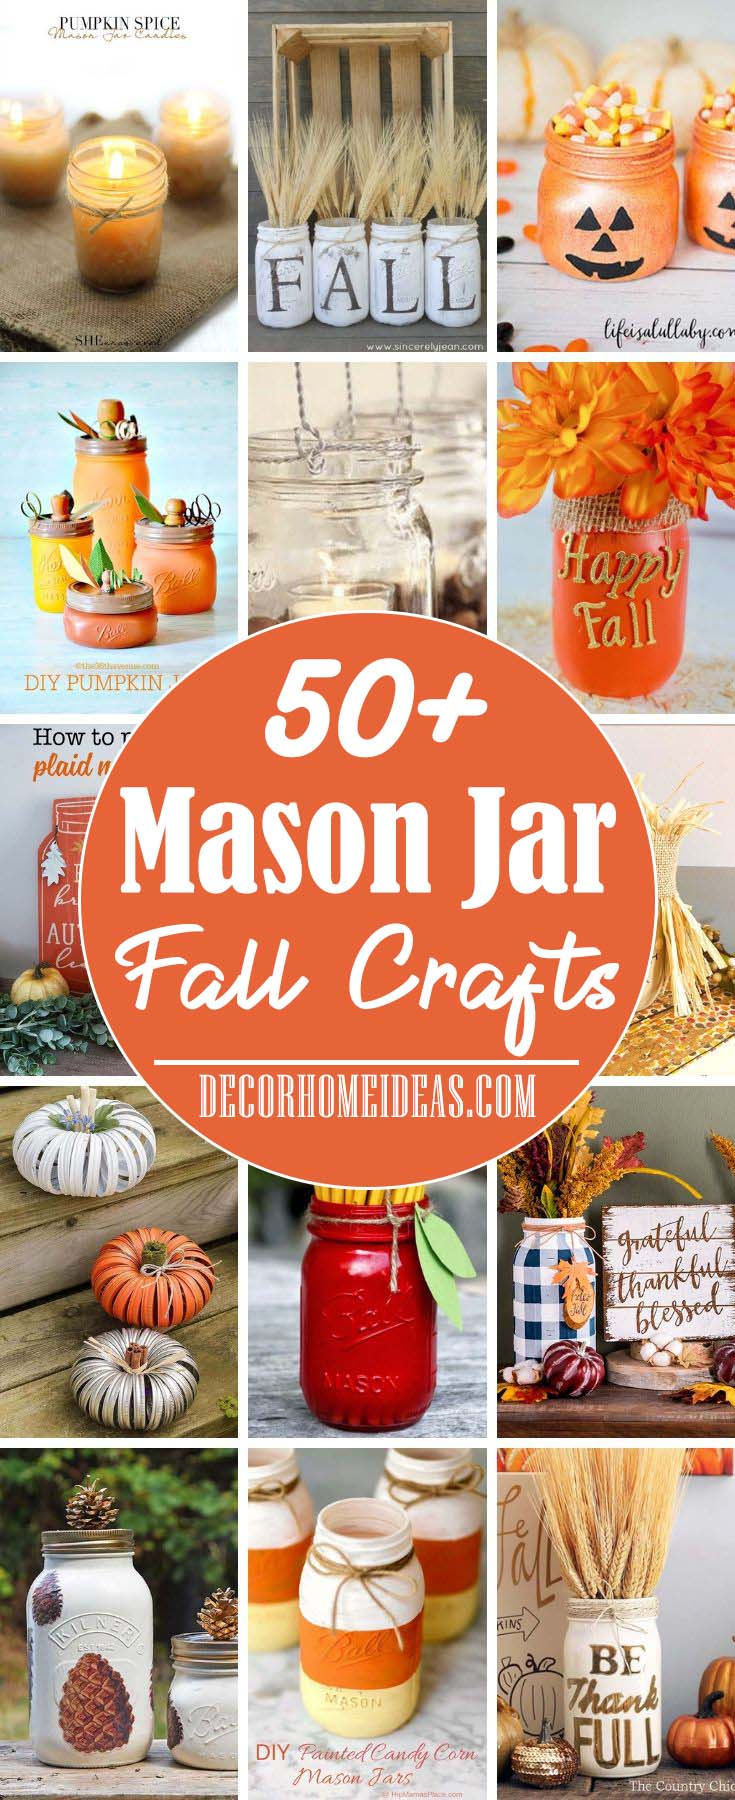 Mason Jar Fall Crafts. DIY Mason Jar Fall Decor projects and tutorials #falldecor #masonjar #decorhomeideas